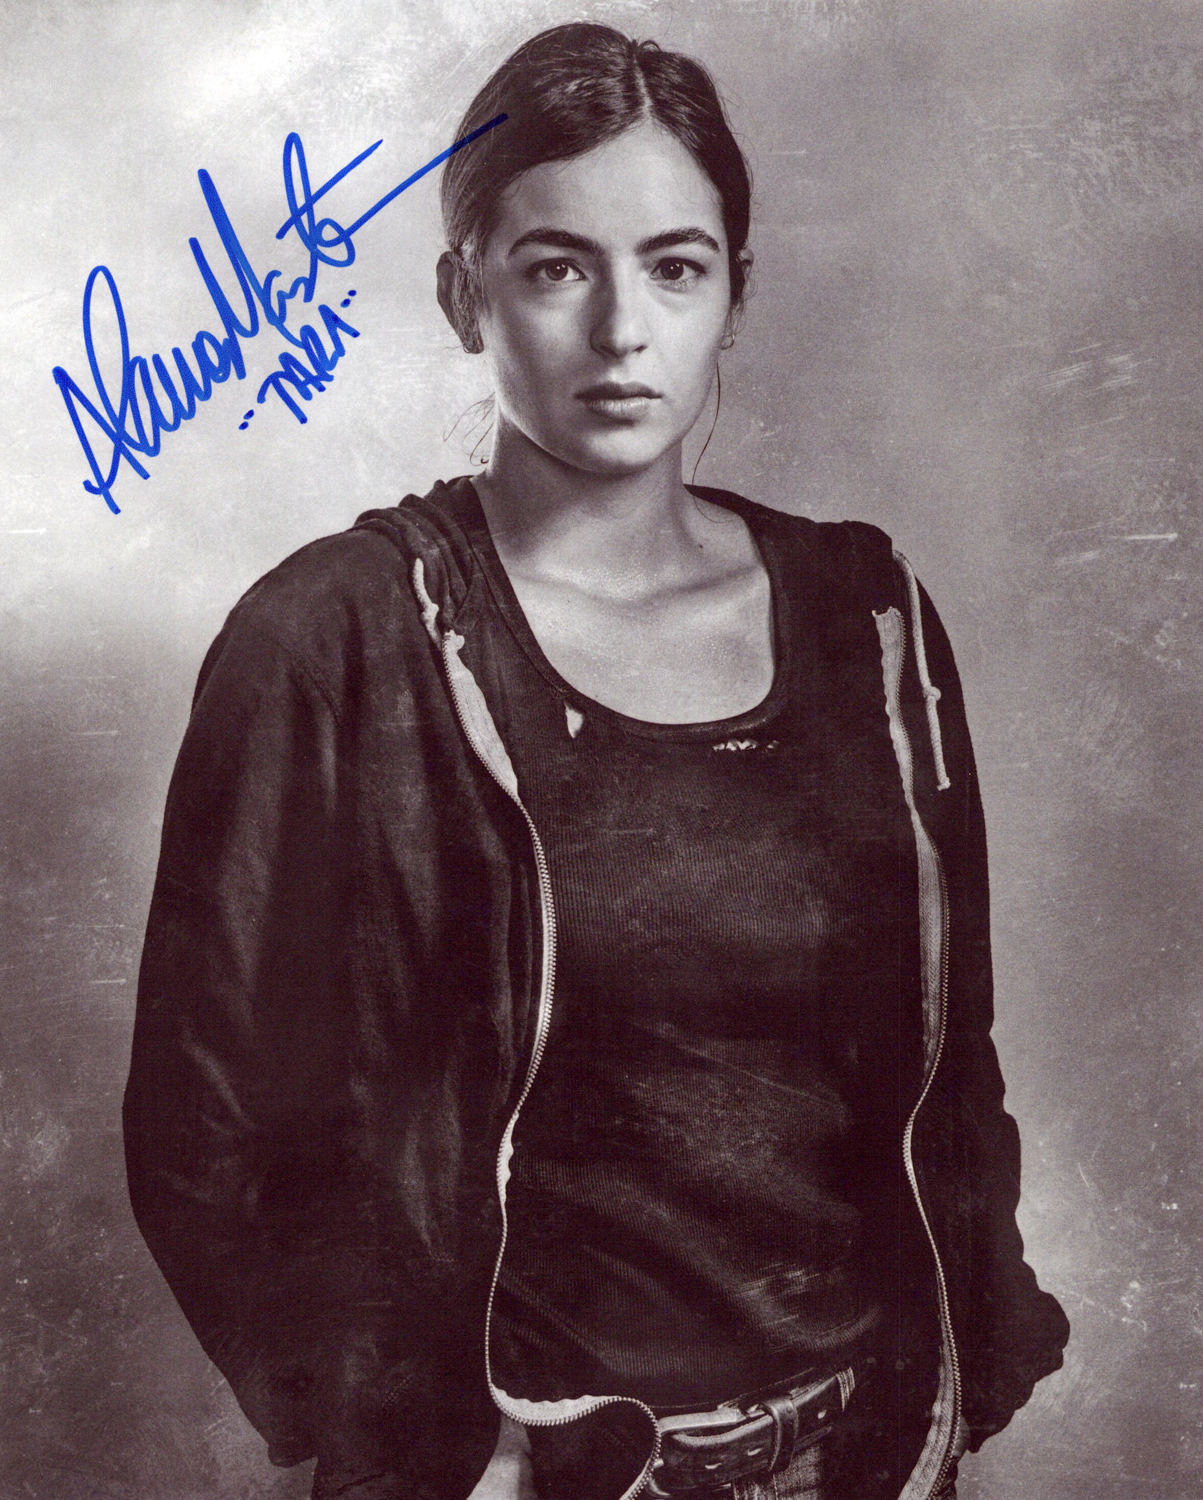 Alanna Masterson Original Autogramm auf Foto 20x25cm - The Walking Dead